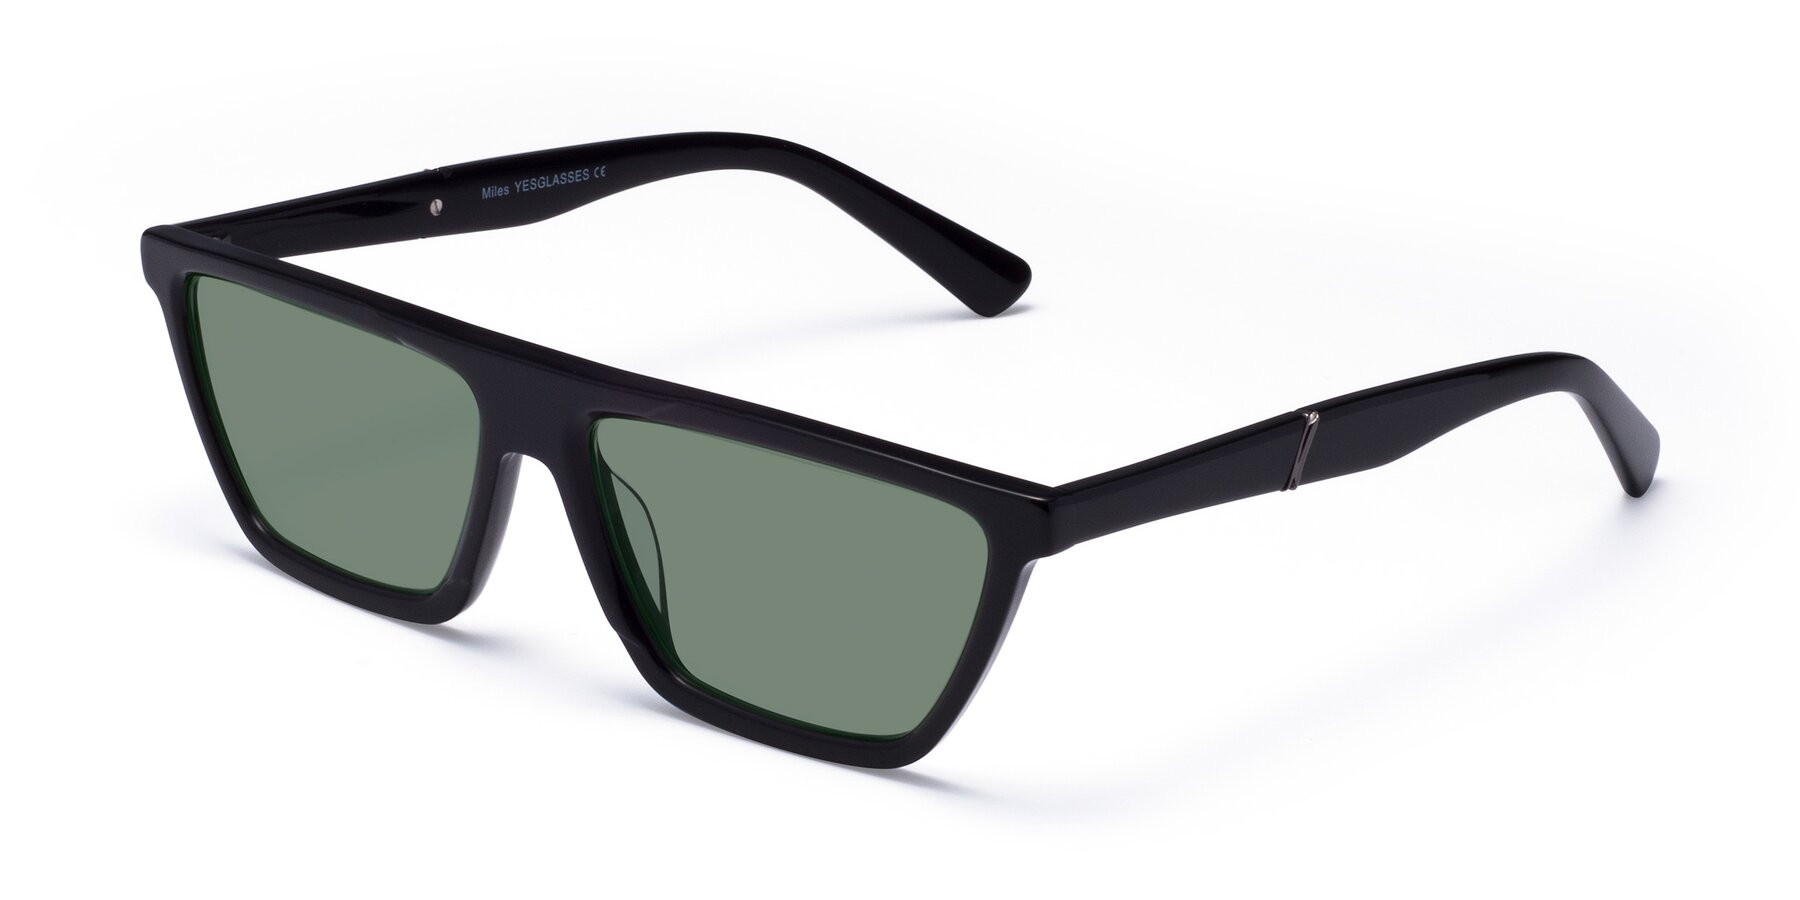 Angle of Miles in Black with Medium Green Tinted Lenses